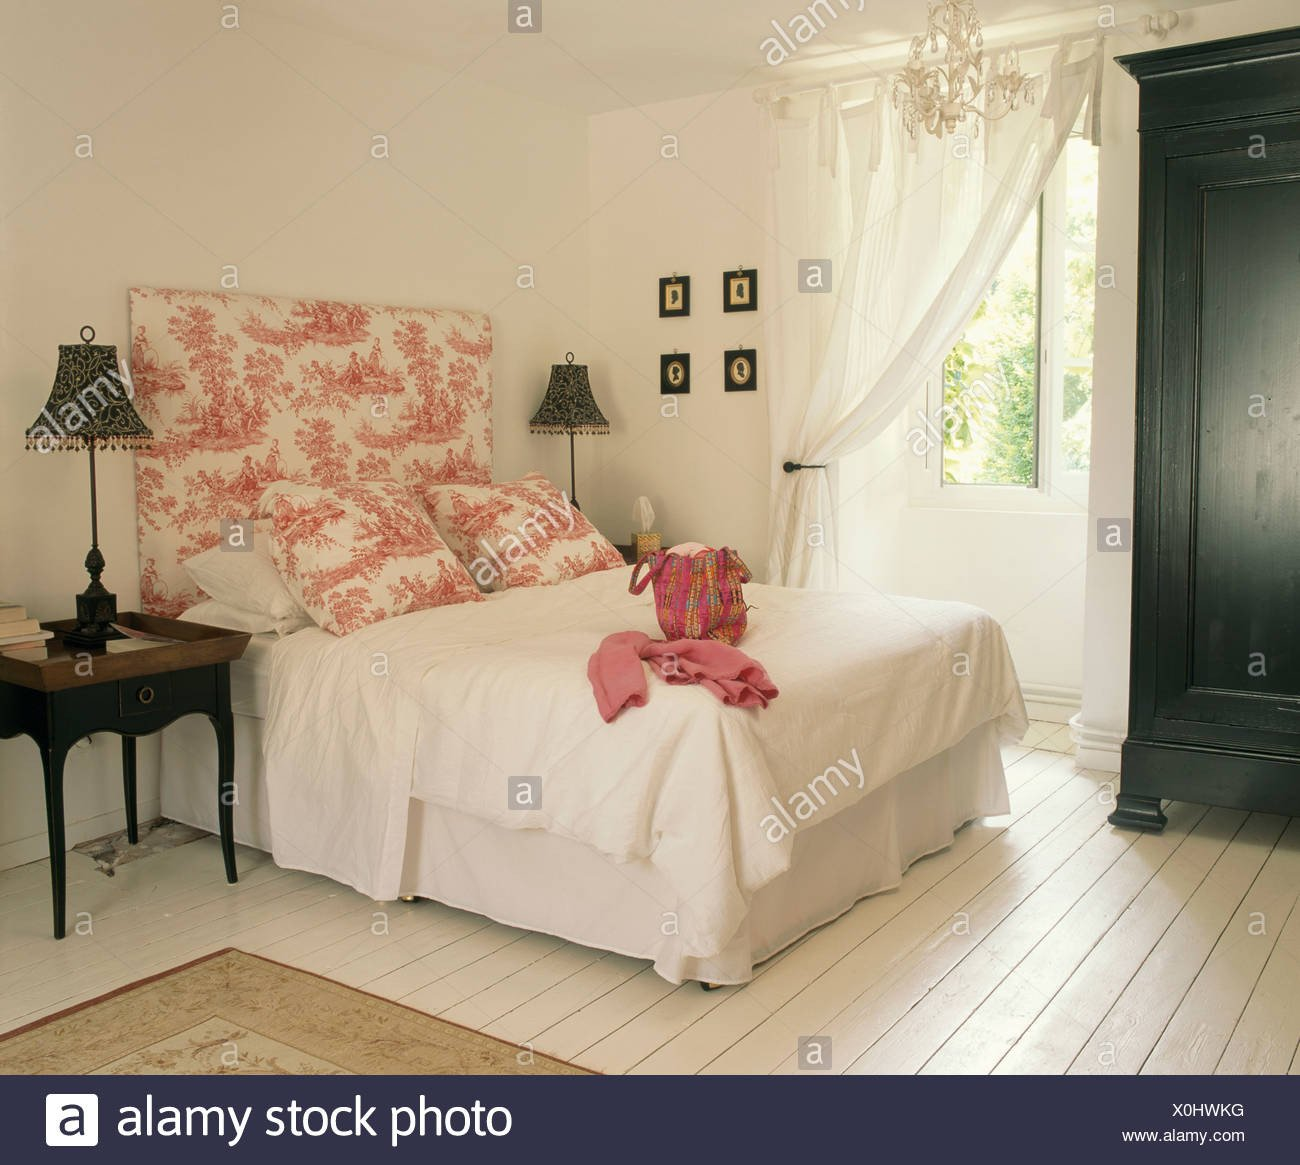 Lighted Headboard Bedroom Set Best Of Pink toile De Jouy Headboard and Pillows On Bed with White